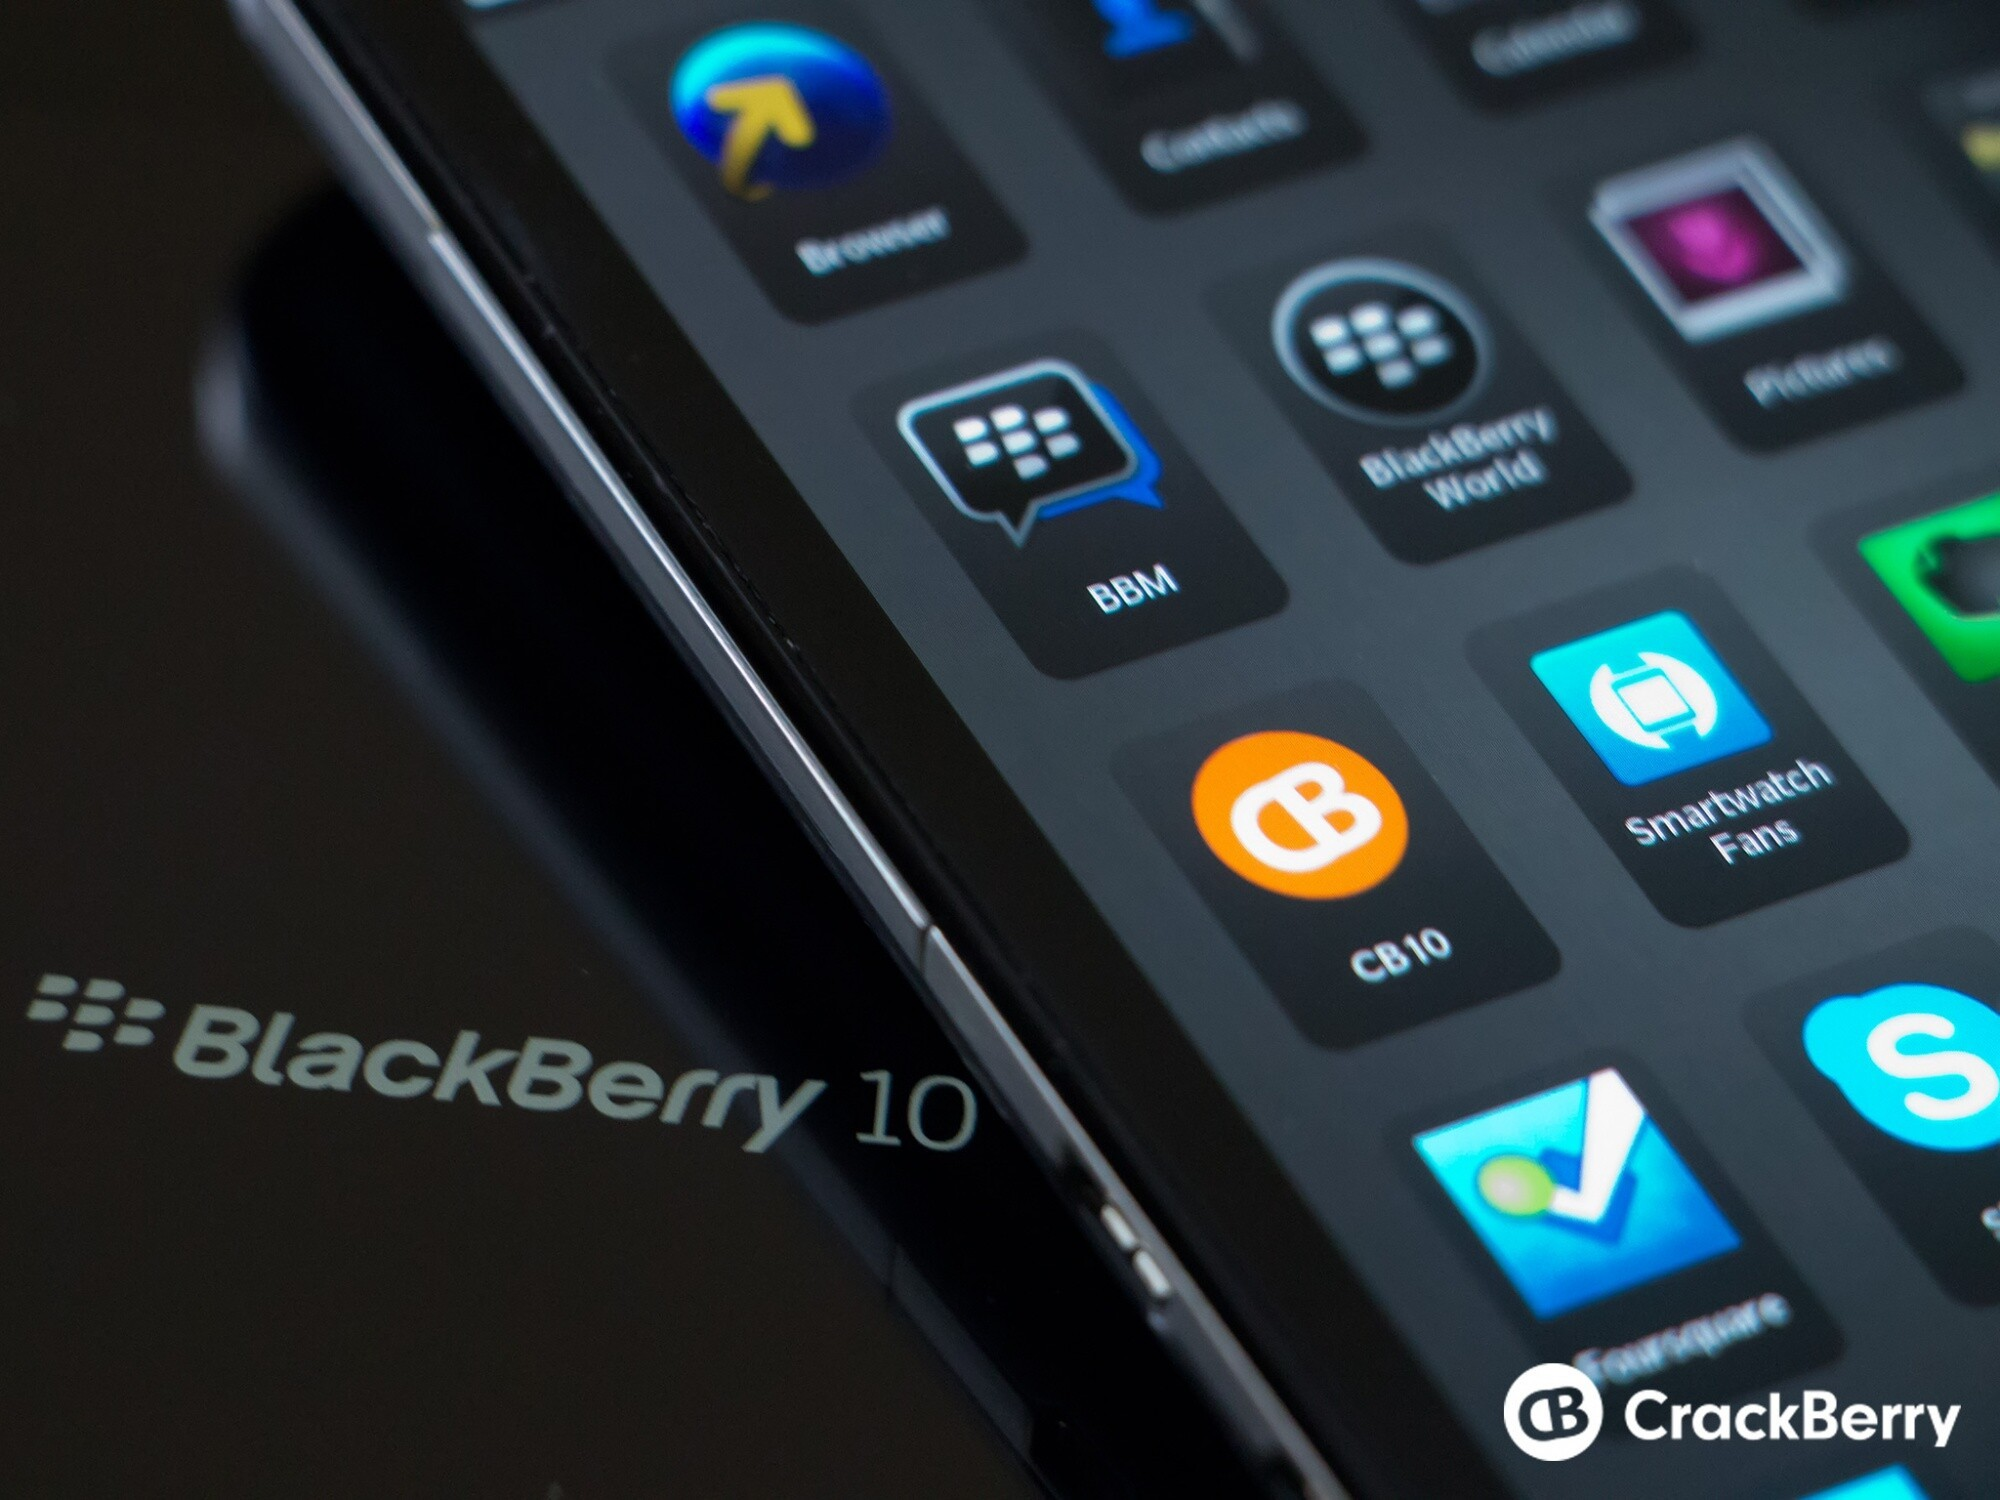 BlackBerry 10.2.1